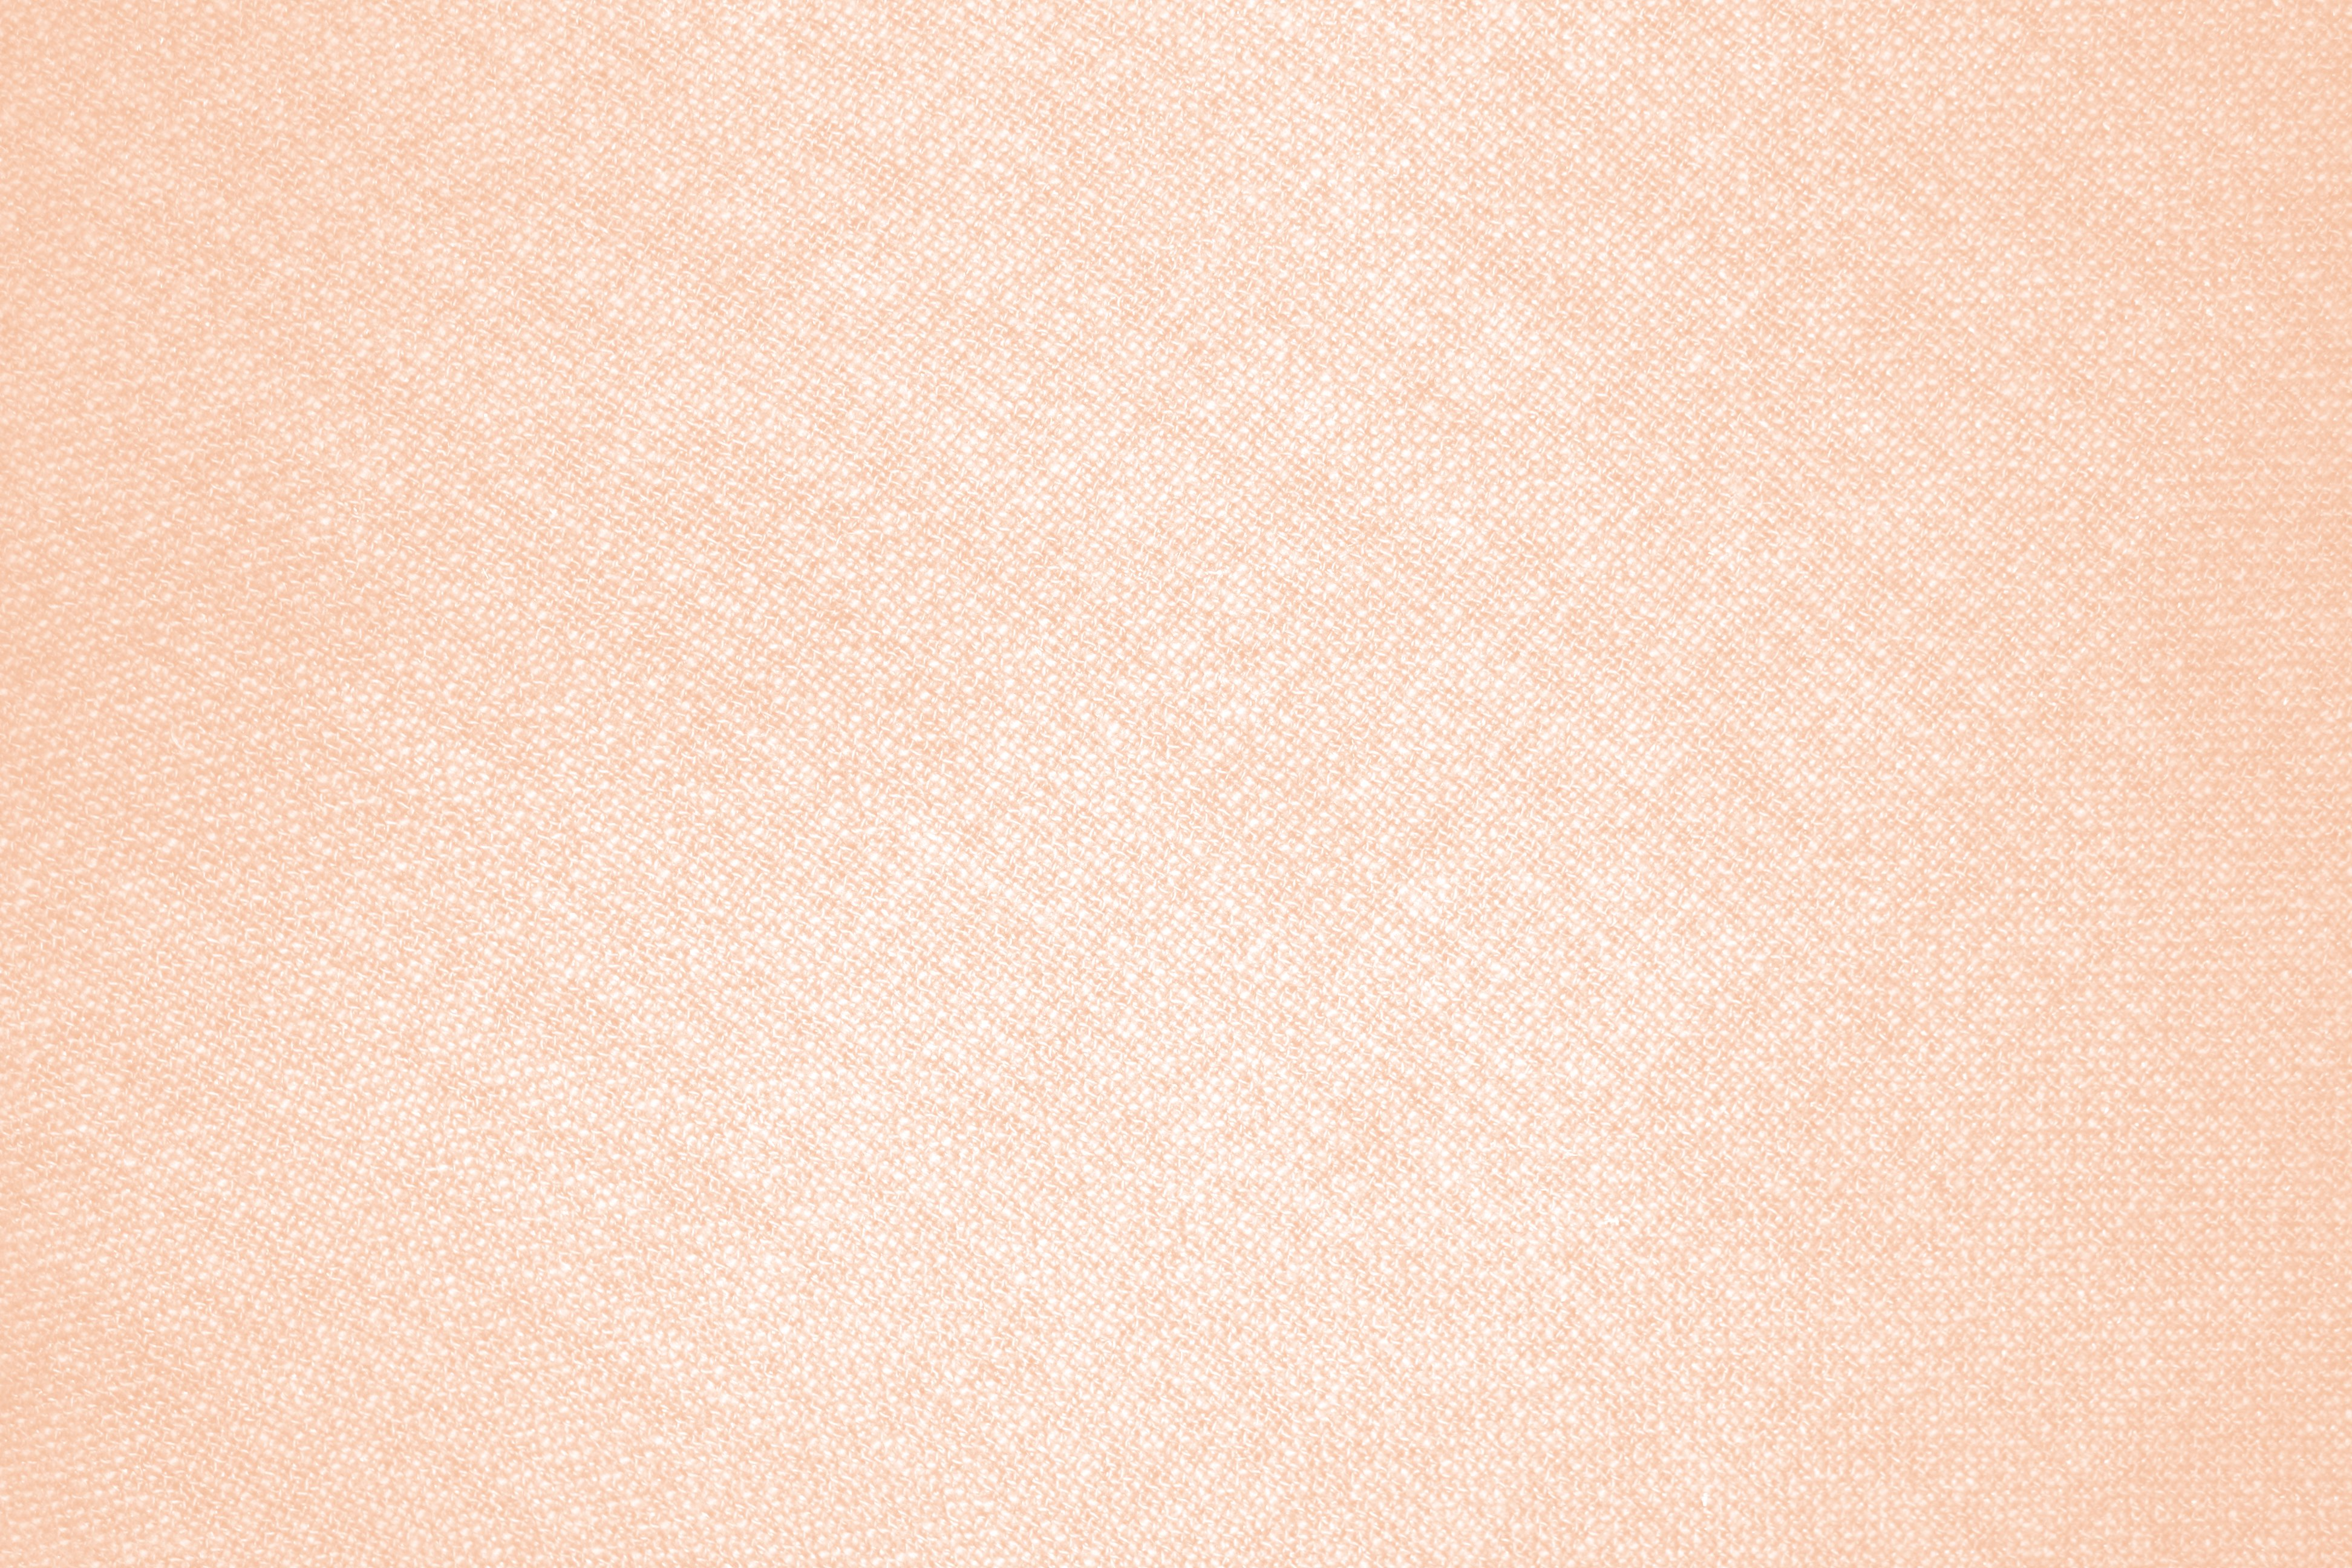 46 peach color wallpaper on wallpapersafari peach color wallpaper on wallpapersafari